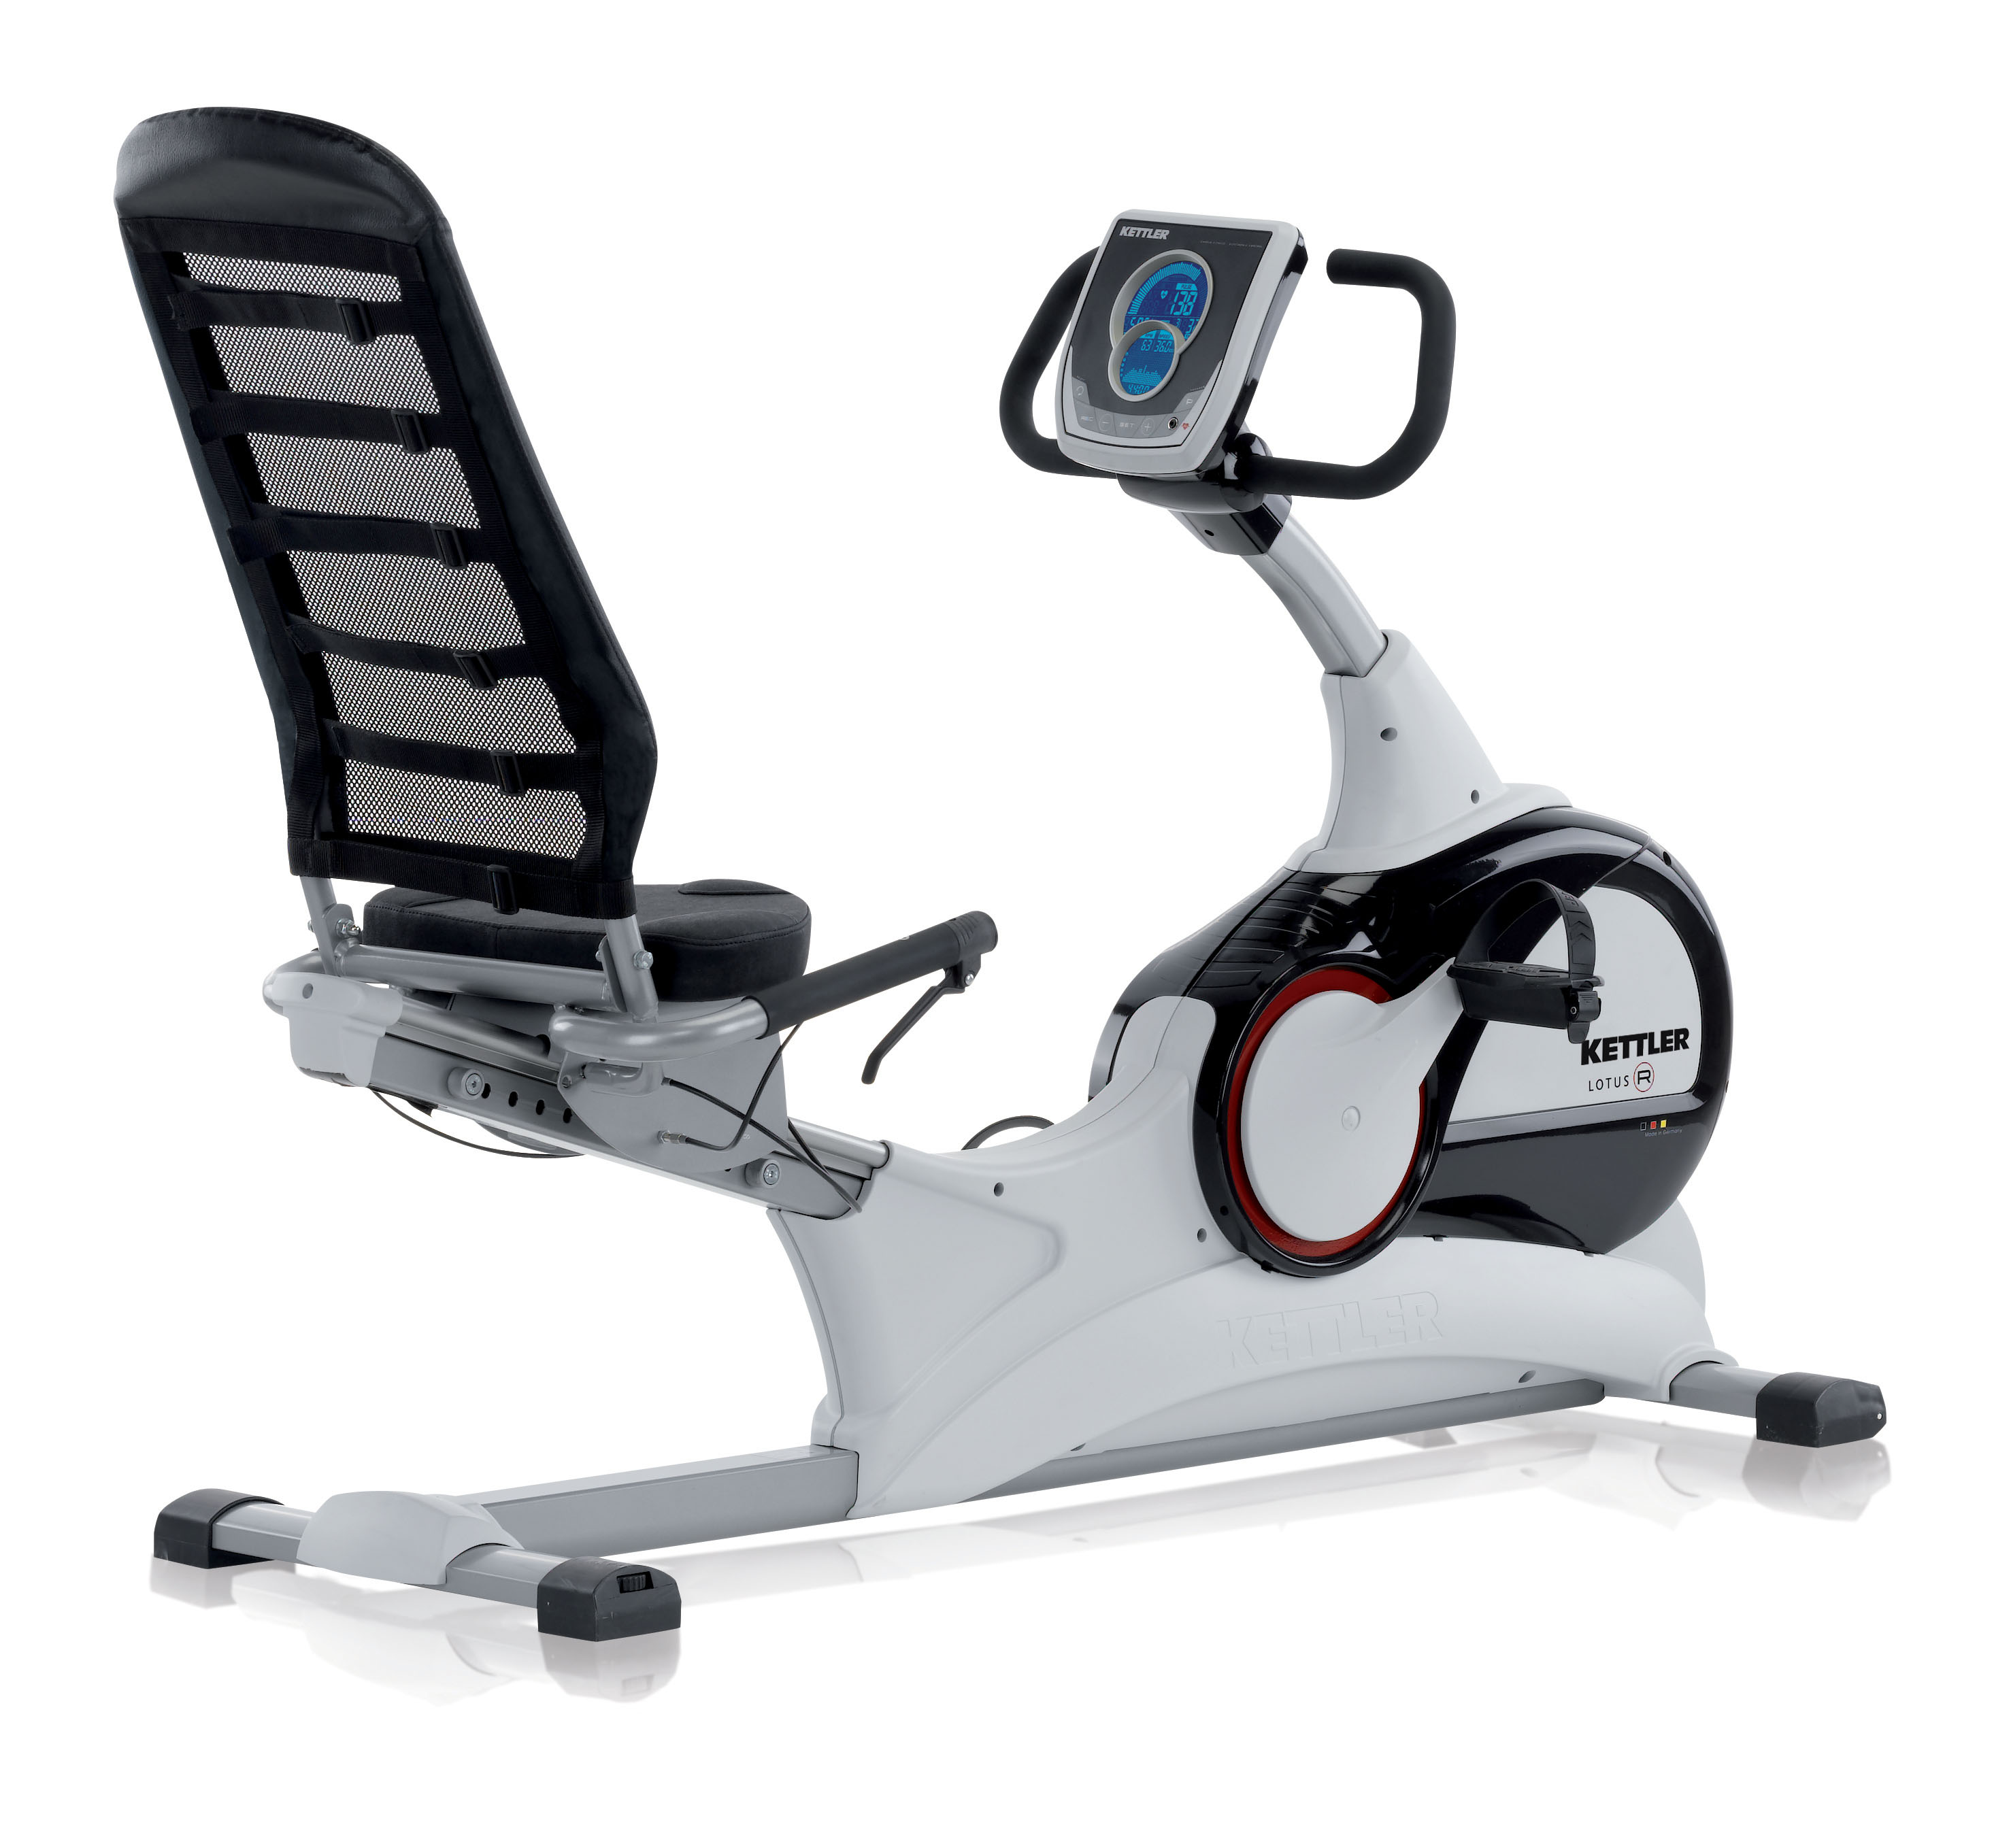 Kettler LOTUS R Recumbent Bike 0 0 Be Motivated To Get Started On A Home Exercise Program